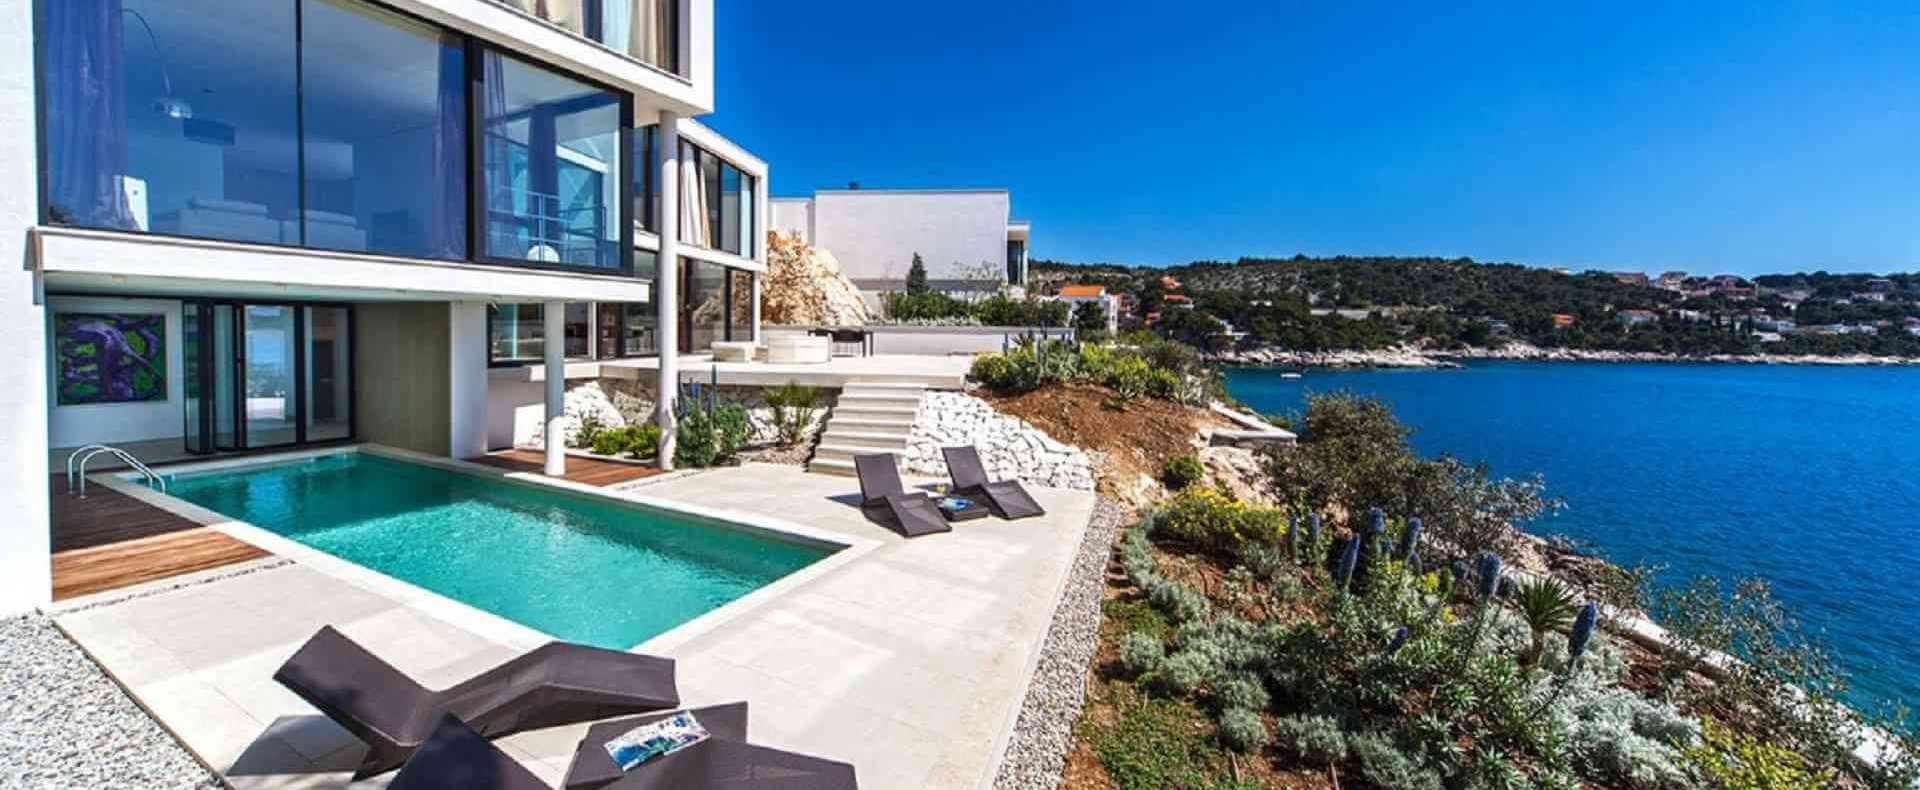 Luxury Villas in Croatia - indulge yourself